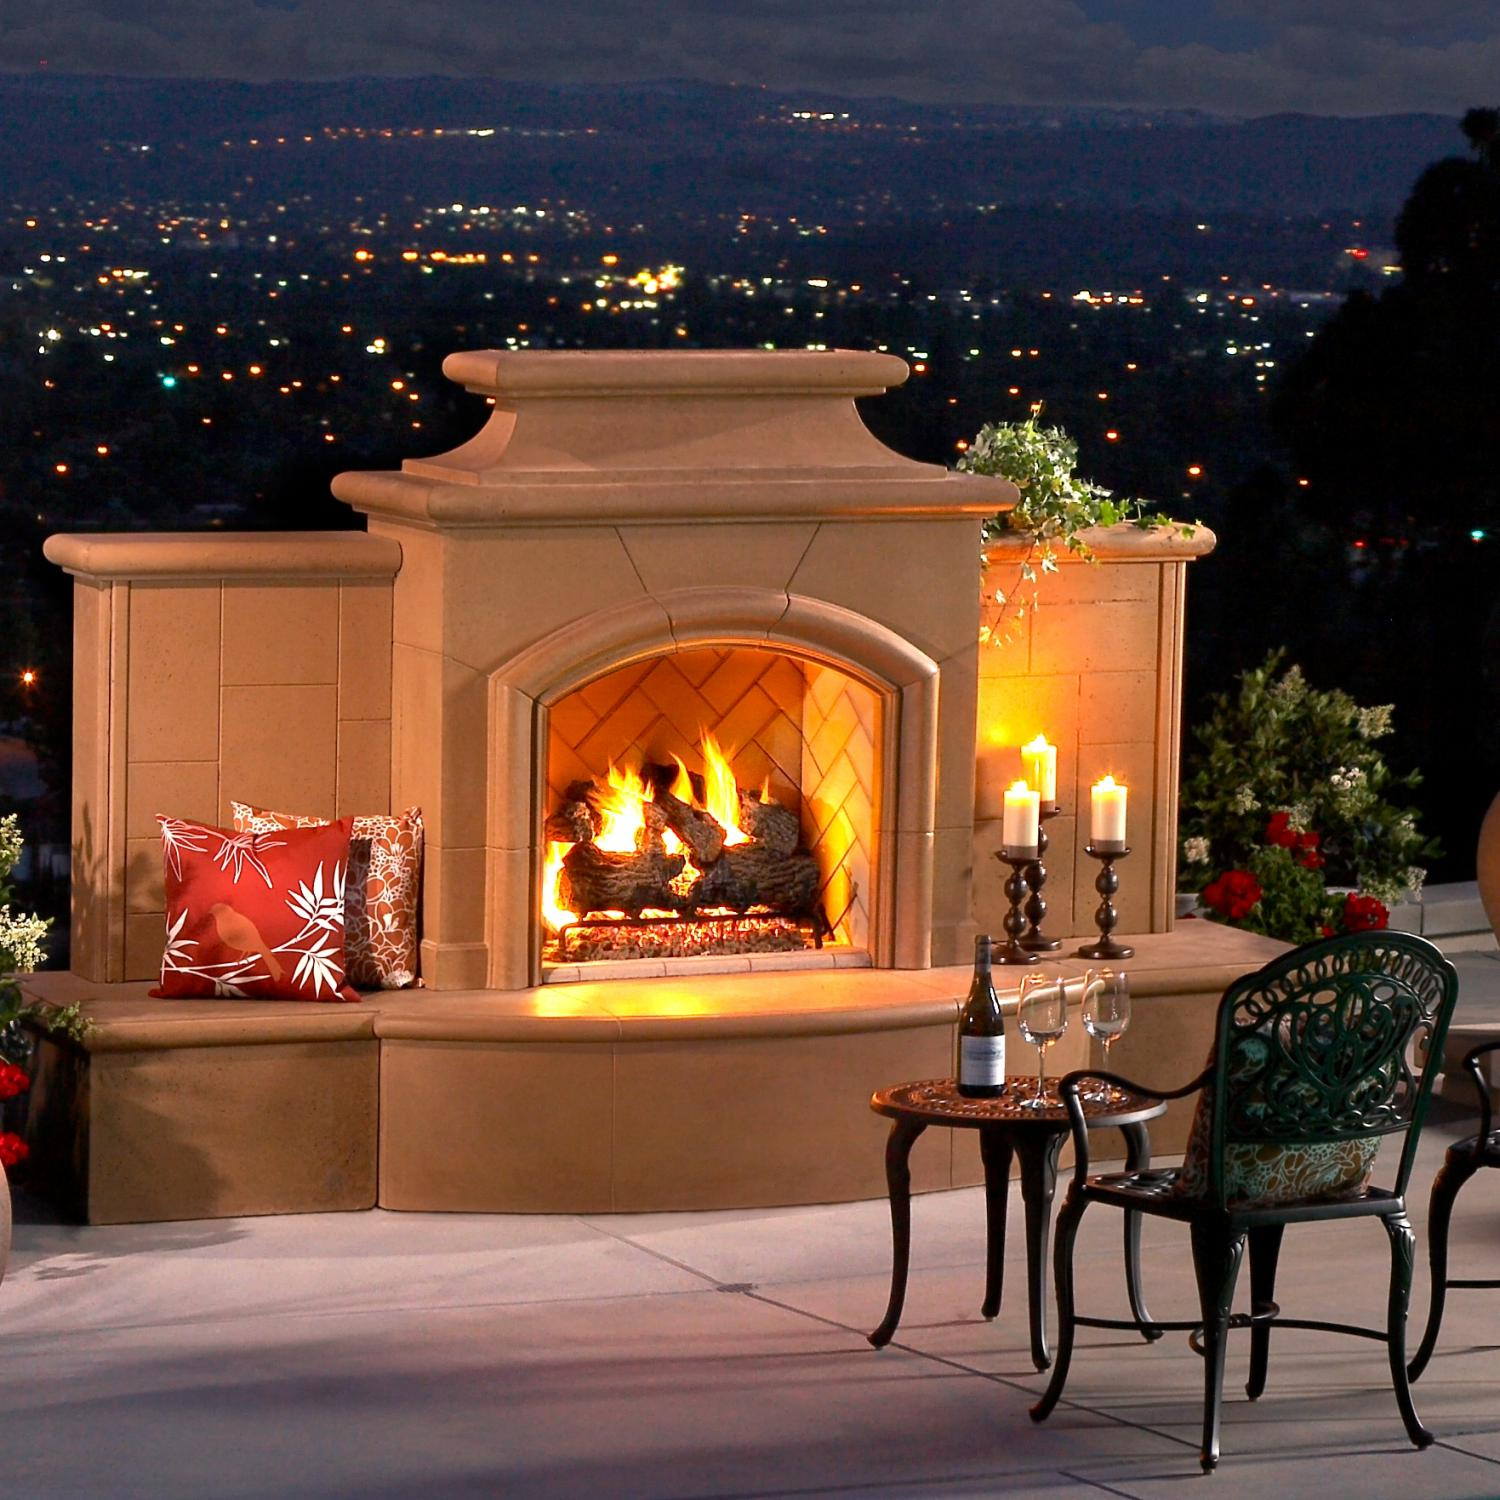 American Fyre Designs Grand Mariposa 113-inch Outdoor Natural Gas Fireplace - Cafe Blanco